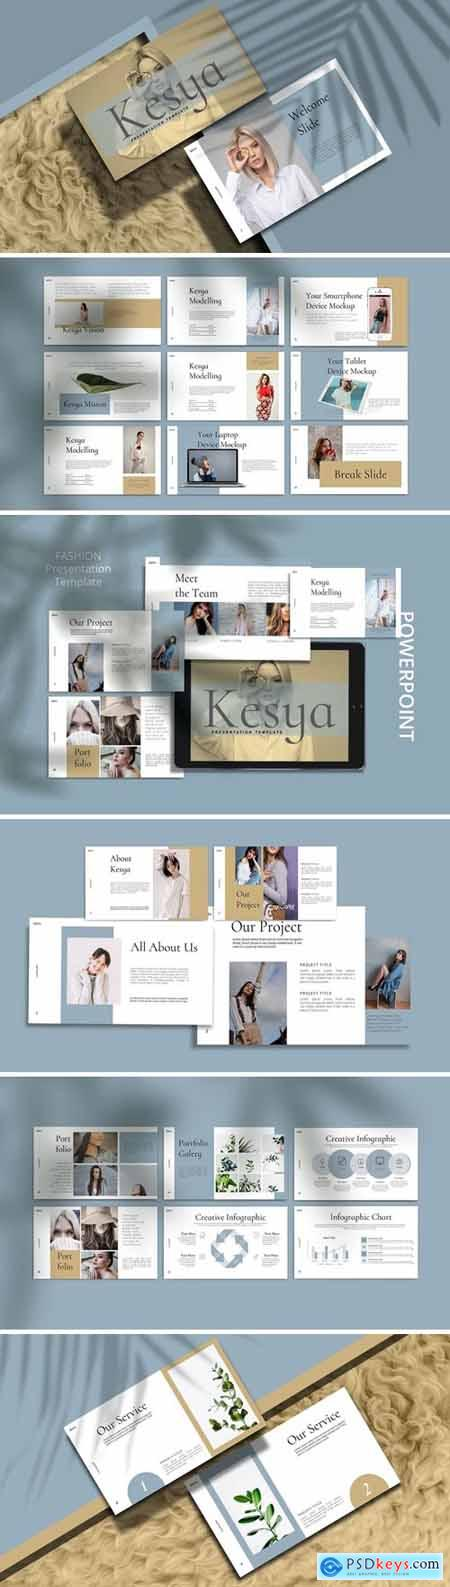 KESYA- Fashion Powerpoint, Keynote and Google Slides Templates